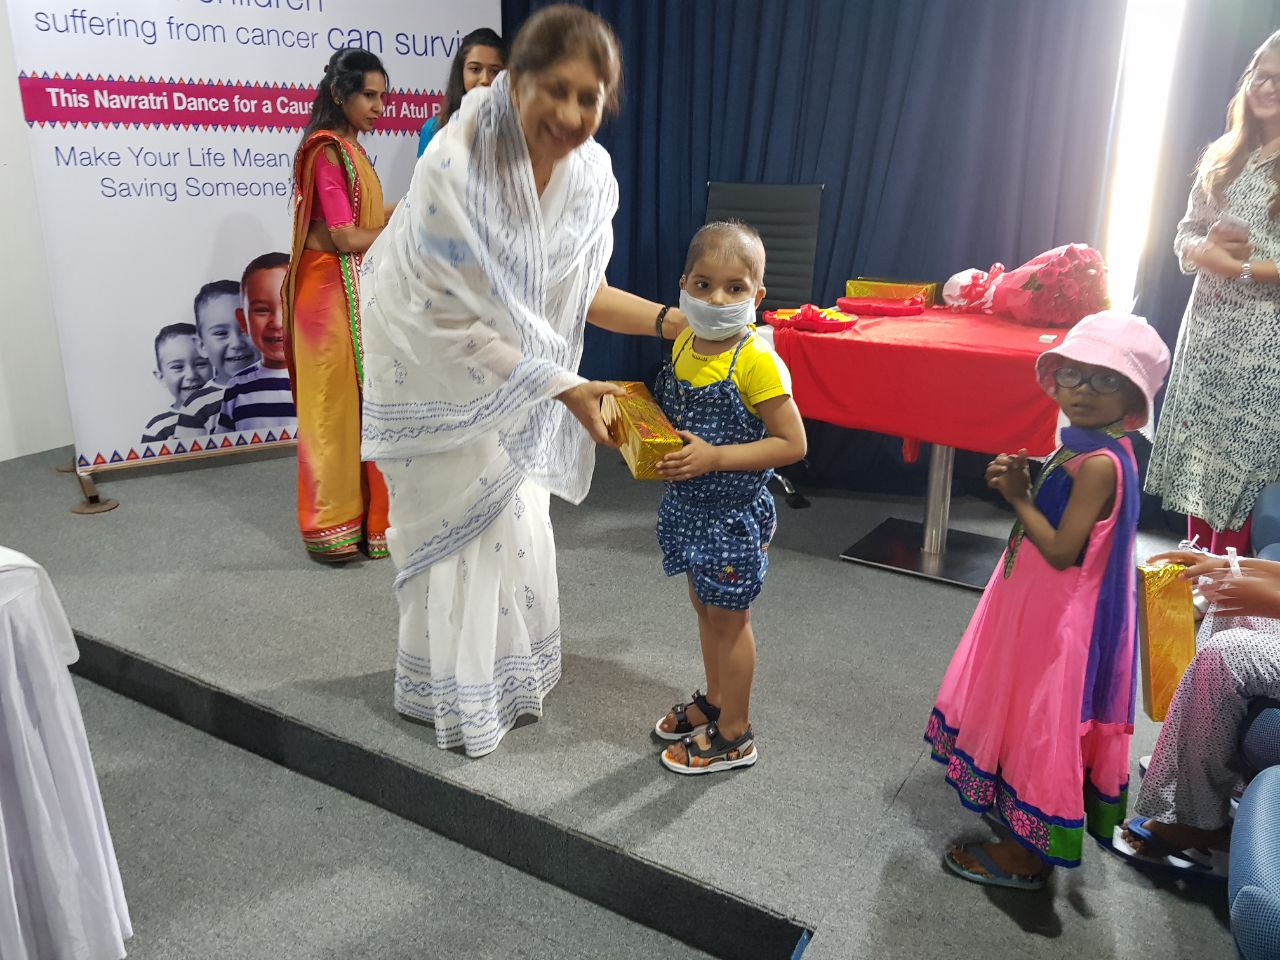 Accessibility And Affordability Are Curcial Practical Aspects Of Cancer  Treatment. To Create Awareness And Raise Funds For Treating Needy Children  With